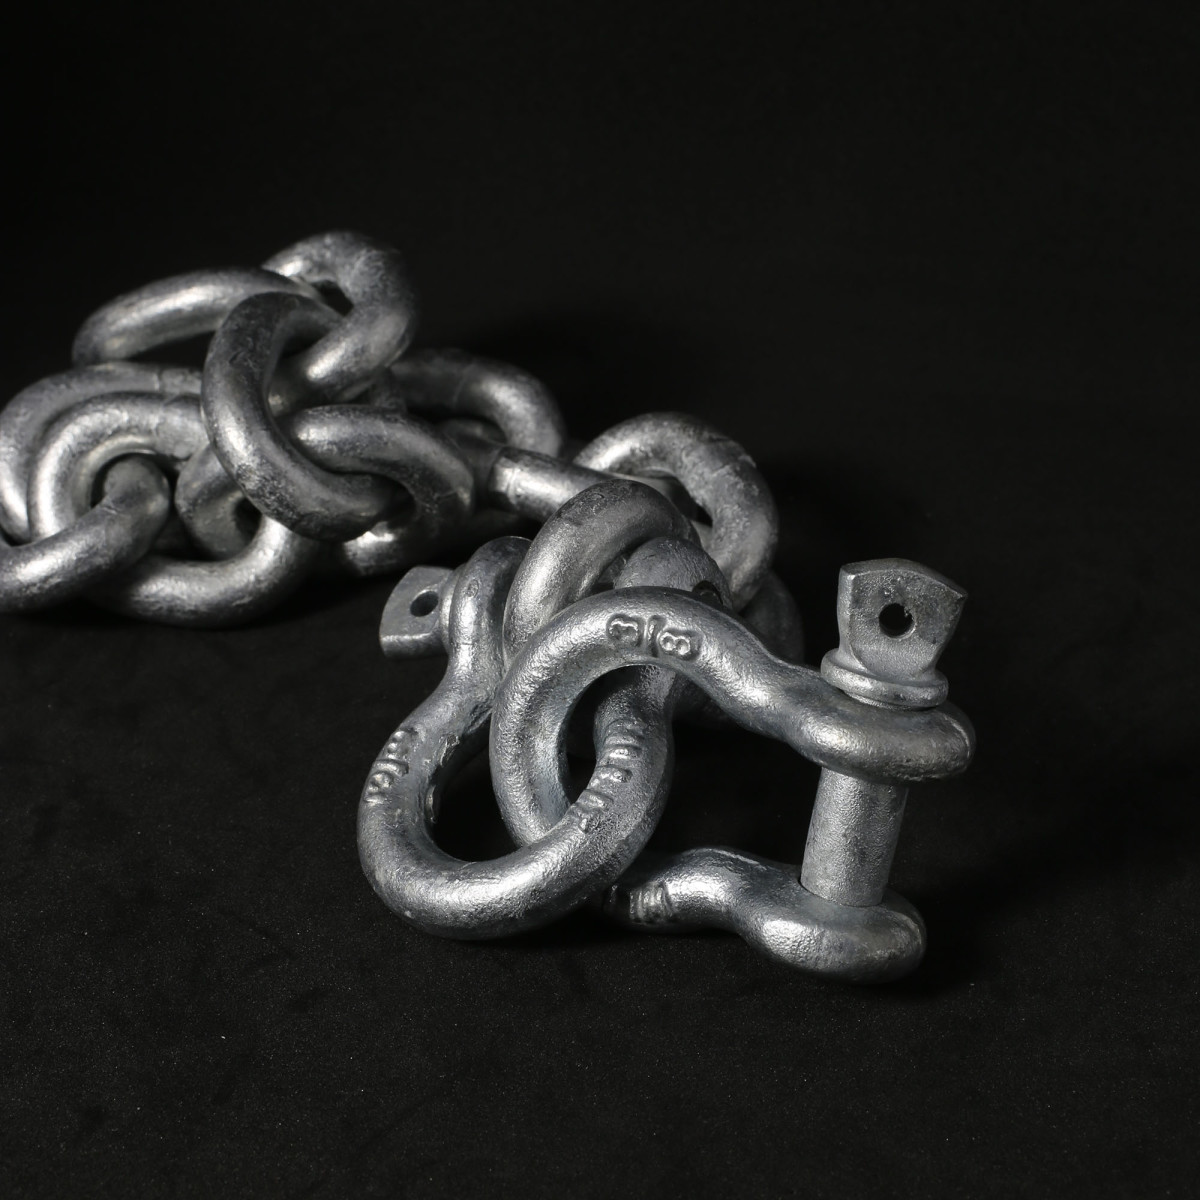 Shackles should be matched to their chain rode, both in material and size.